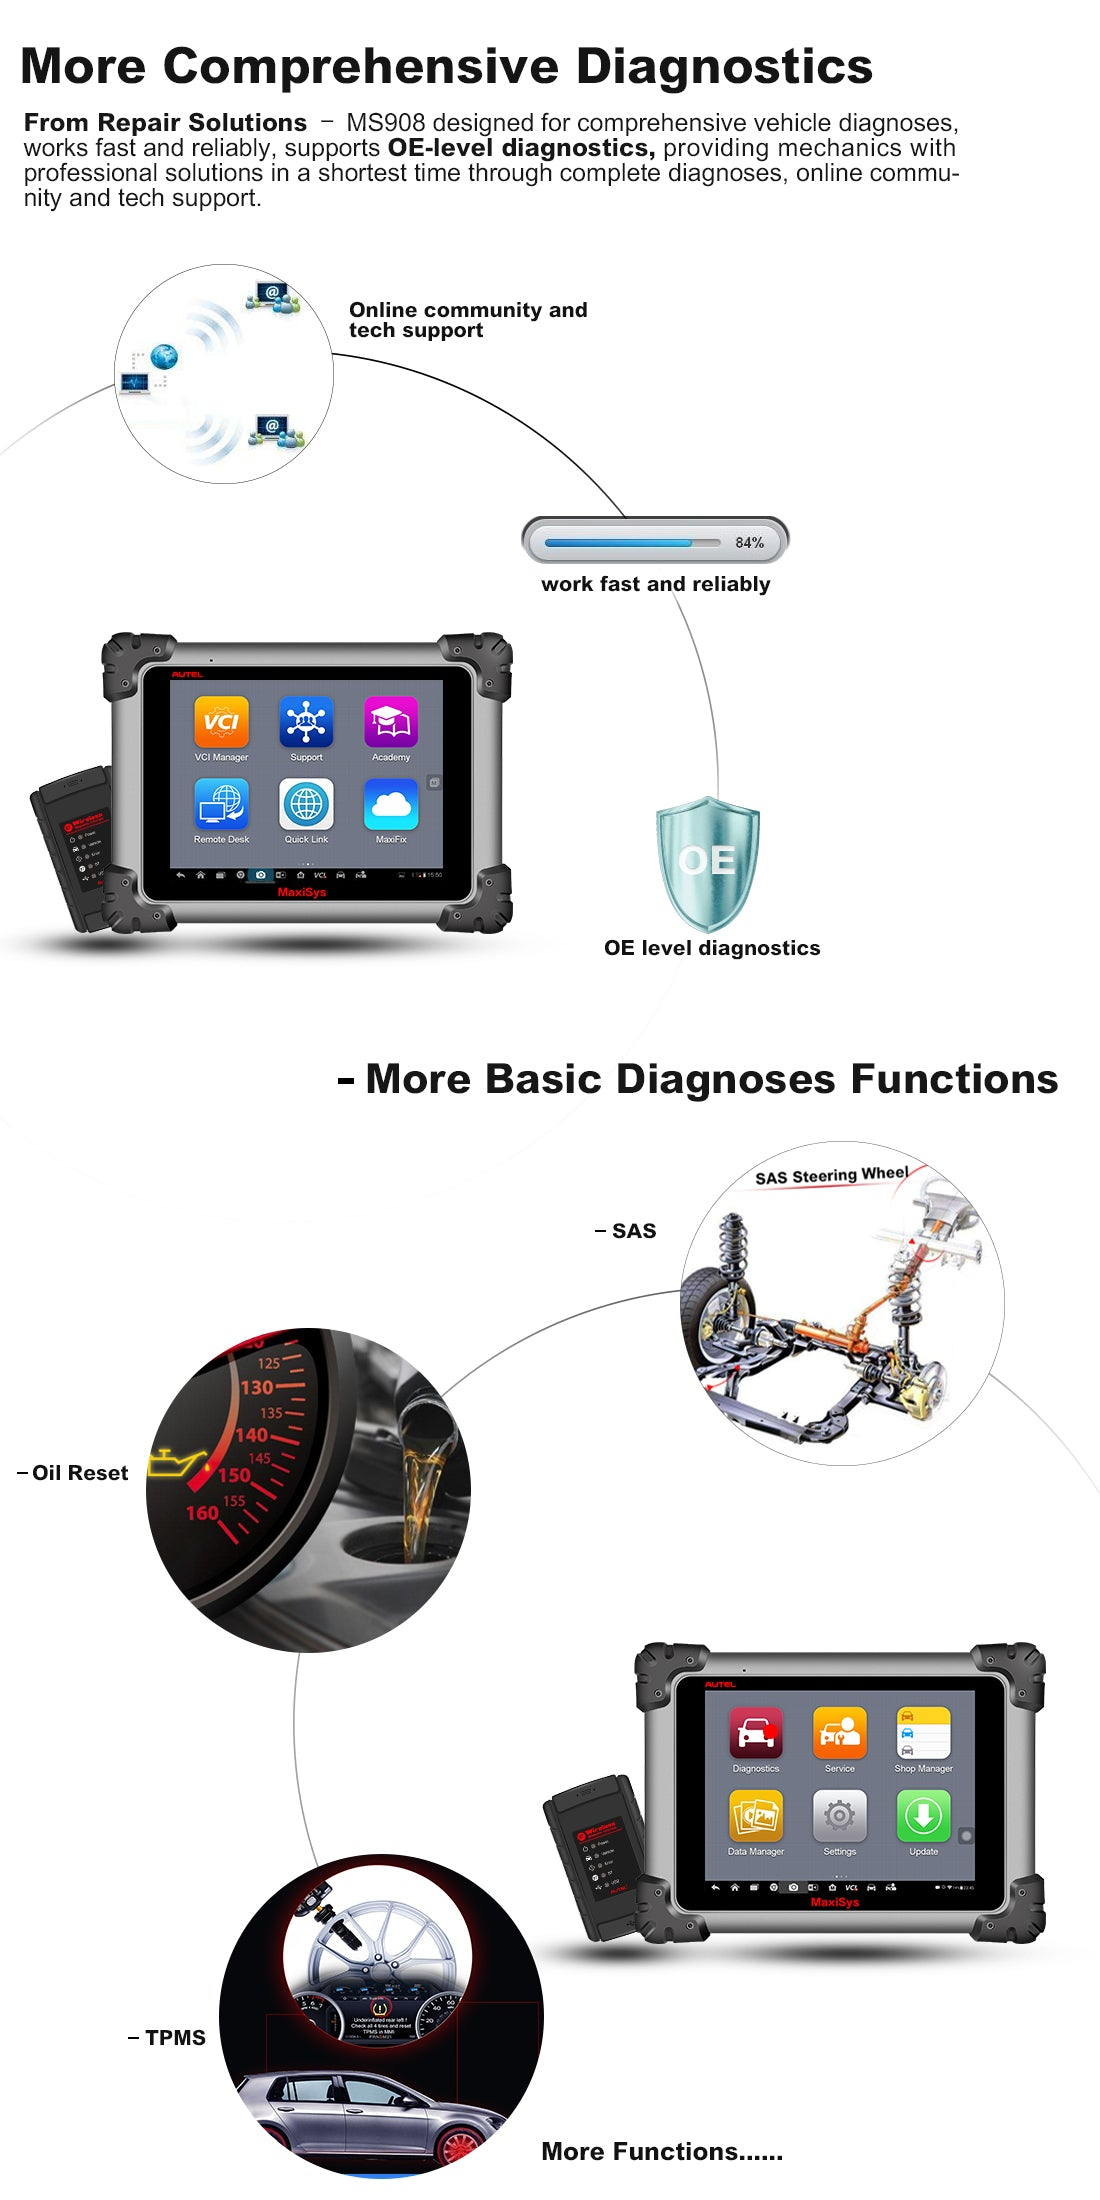 autel ms908 more Comprehensive Diagnostics functions